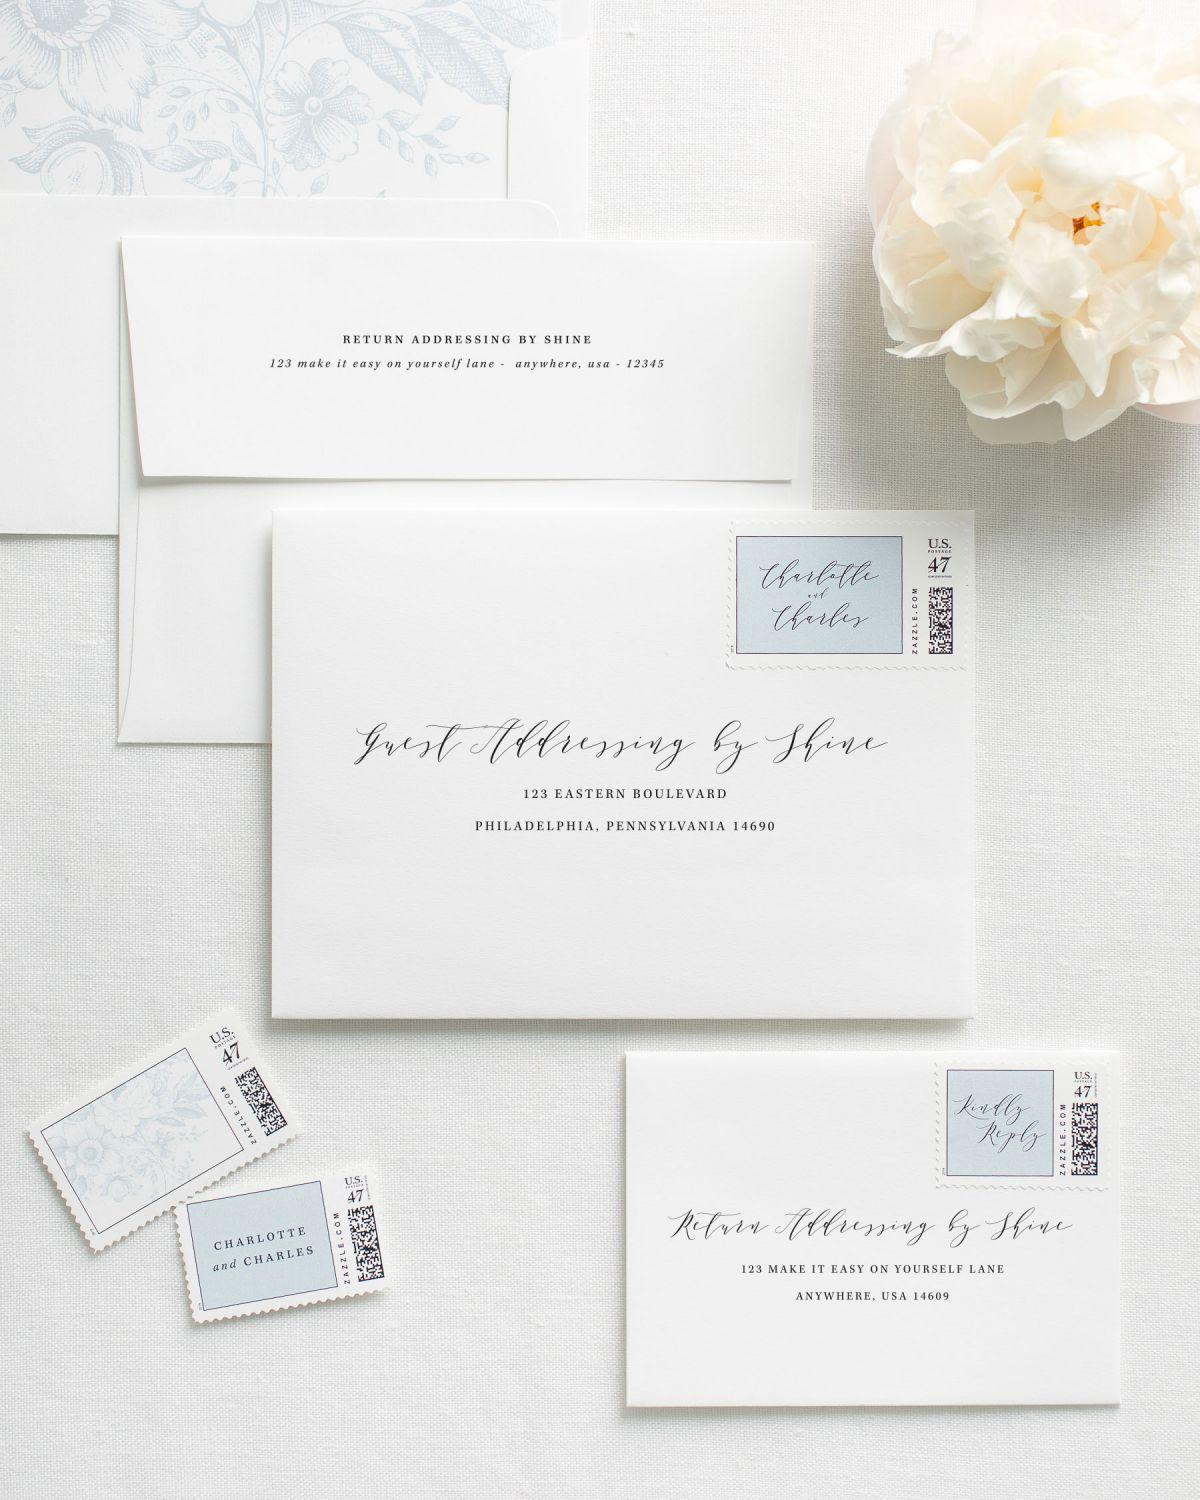 Invitation Envelopes with the Addresses Printed